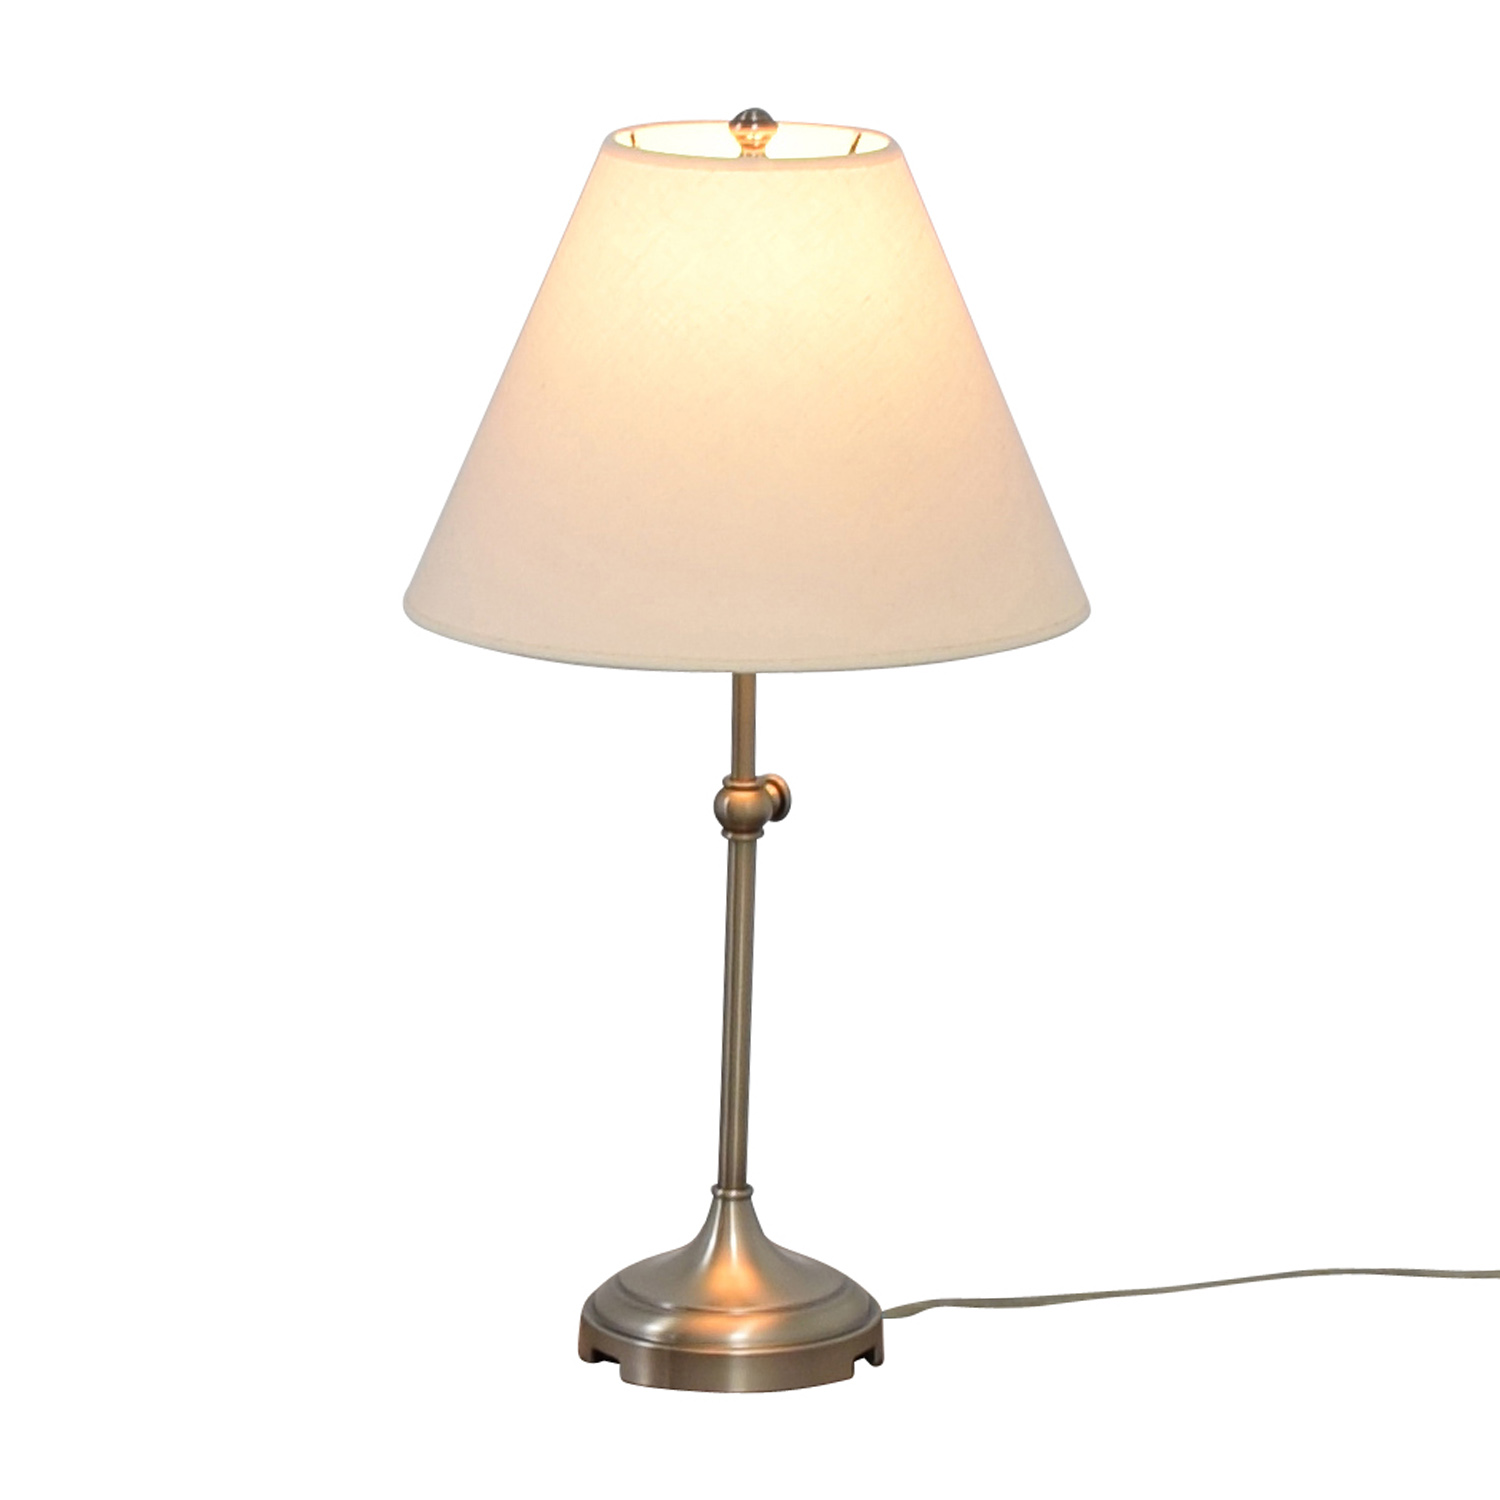 Pottery Barn Phoenix Lamp: Pottery Barn Pottery Barn Chrome Lamp / Decor